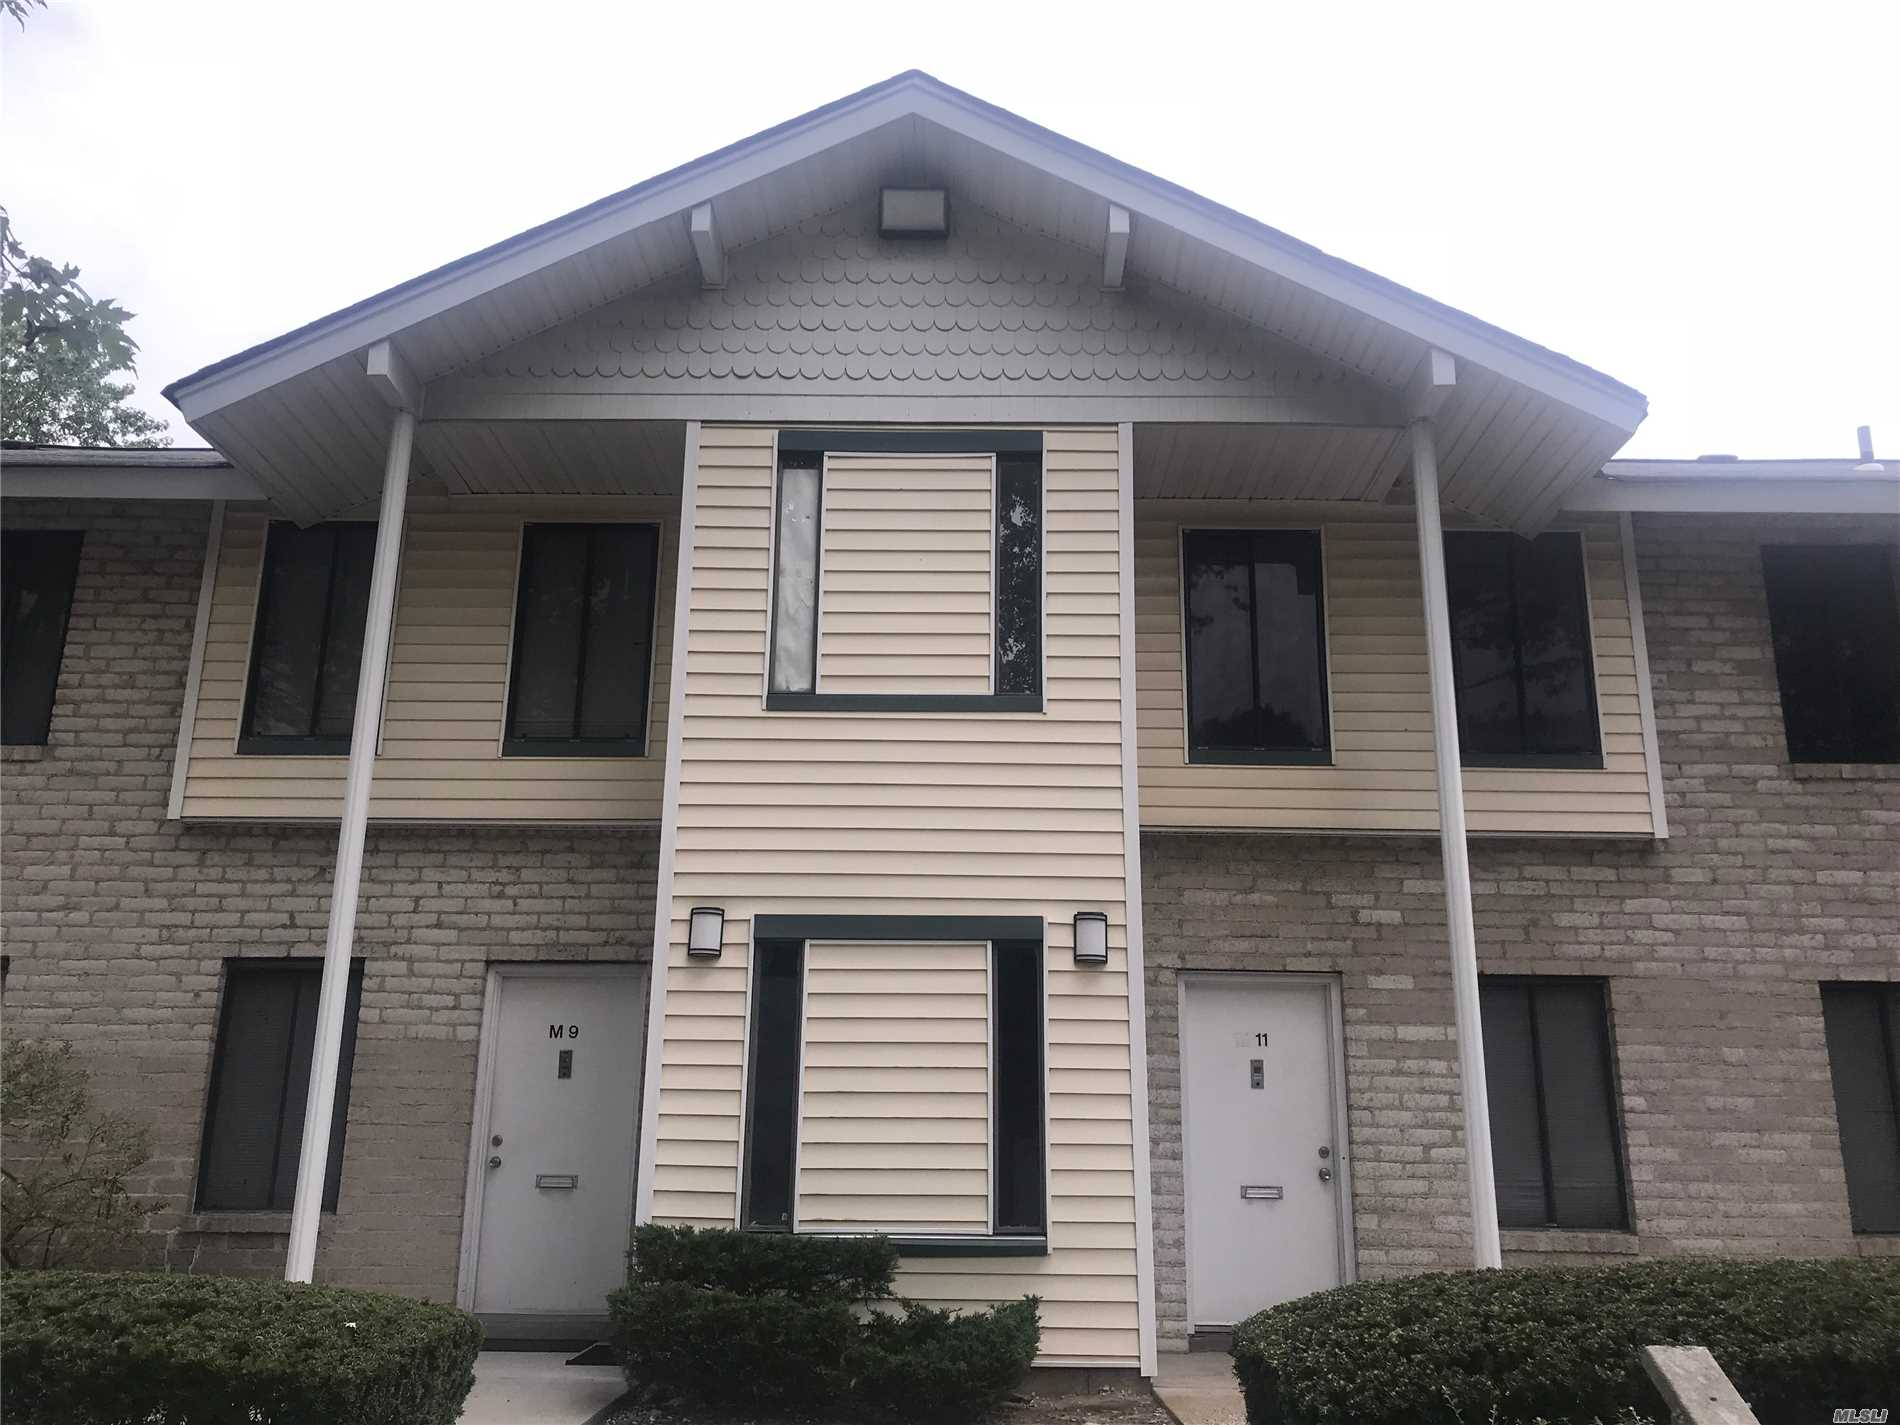 1 Bedroom Co-Op Upper Unit, Lr/Dr Combo, Full Bath, Kitchen. View Of Courtyard. Amenities Include Tennis Courts, Indoor/Outdoor Pools, Club House. Investors Allowed. Close To Shopping, Transportation, Town Parks/Recreation.